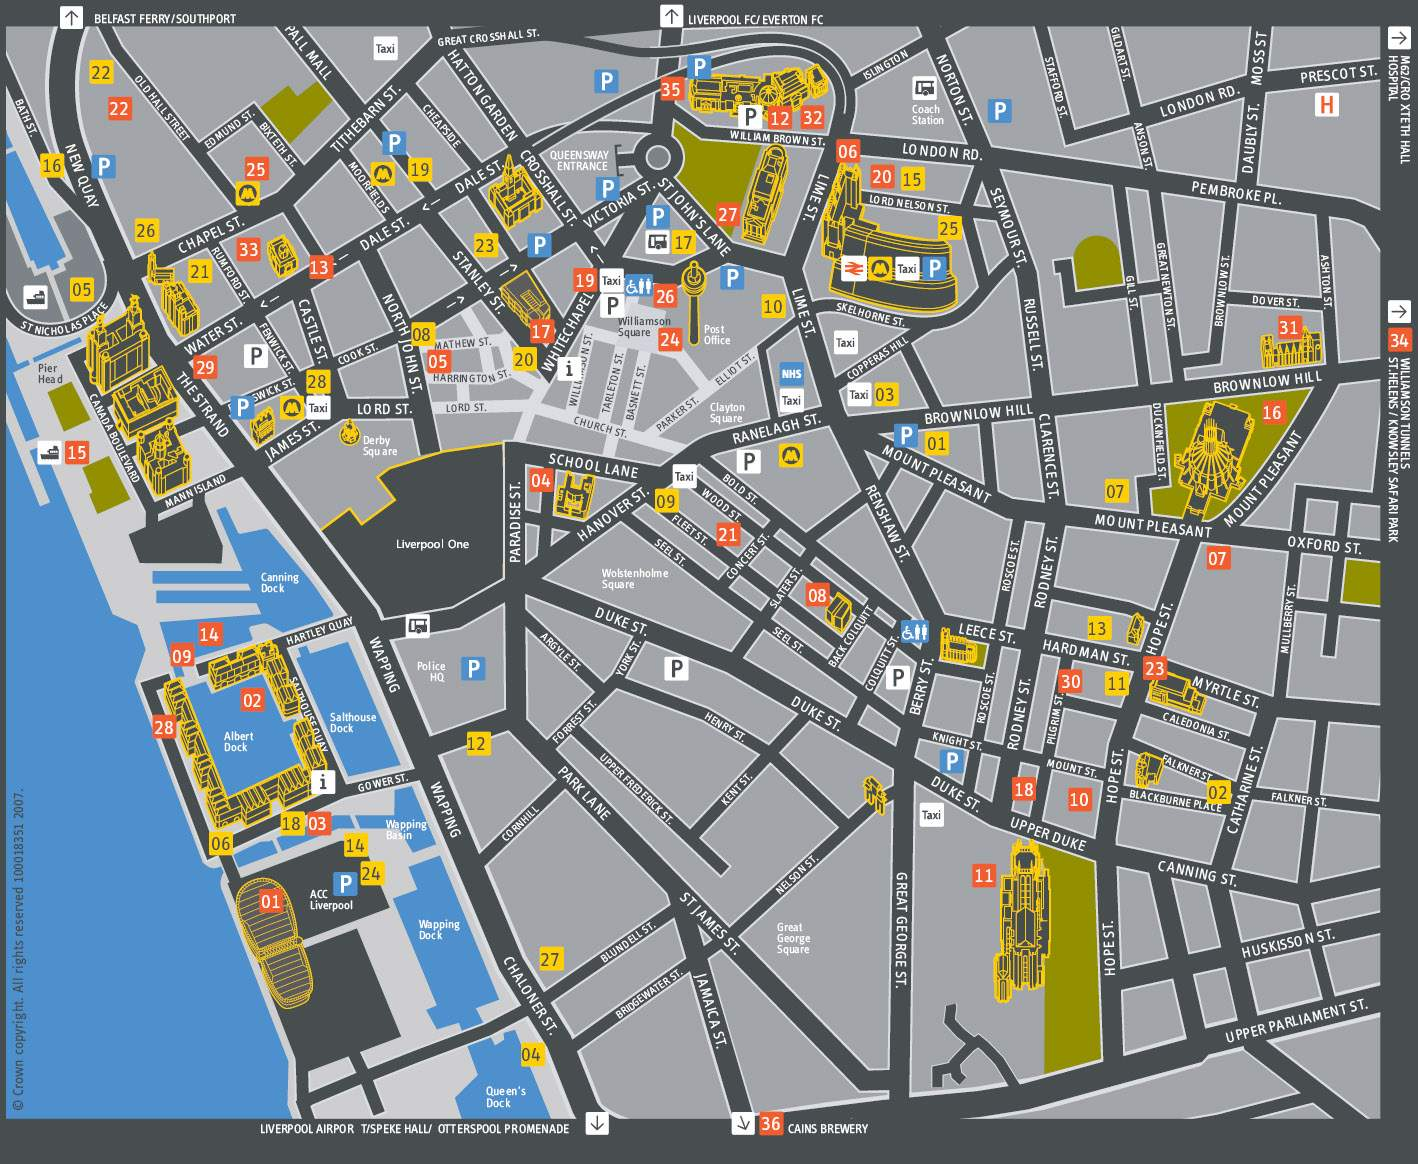 Large Liverpool Maps for Free Download and Print | High ... on marylebone map, liverpool england central map, borough map, paddington station map, russell square map, bangkok airport map, leadenhall market map, covent garden map, grosvenor square map, camden town map, east india map, west end map, tower hill map,